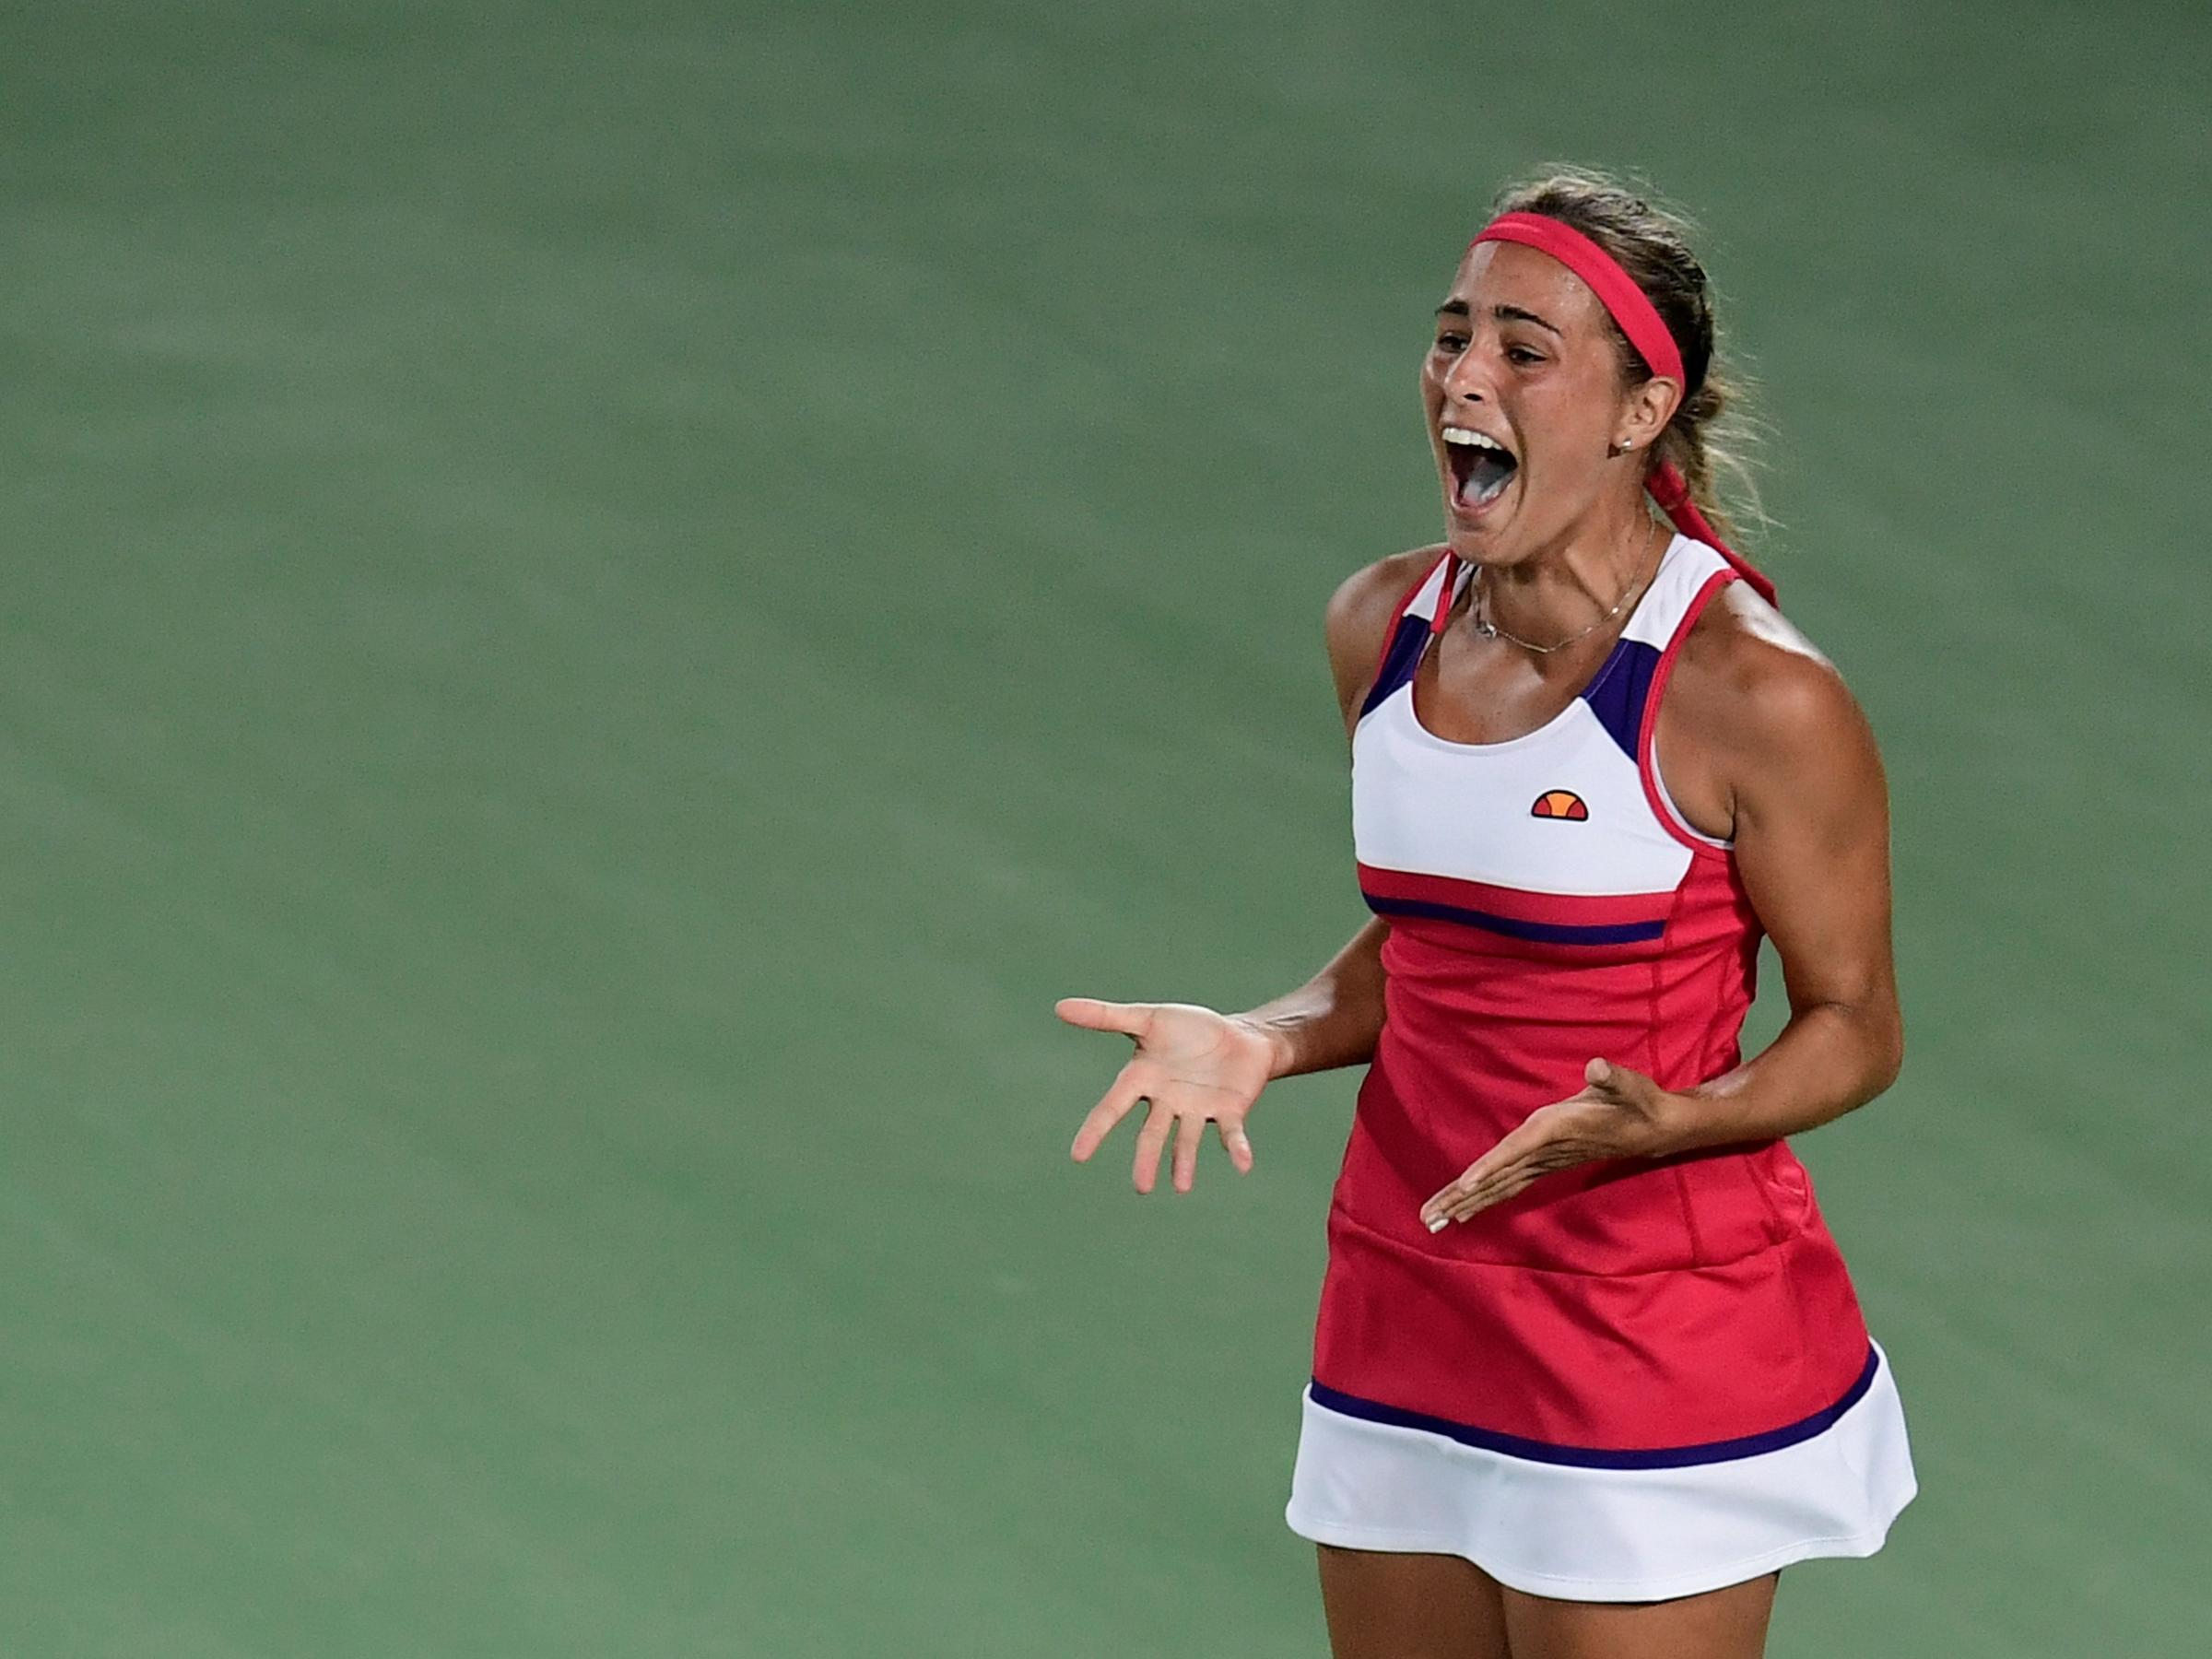 ba17fe00f385 Puerto Rico s Monica Puig reacts after winning her women s singles final  tennis match against Germany s Angelique Kerber at the Olympic Tennis  Centre of the ...